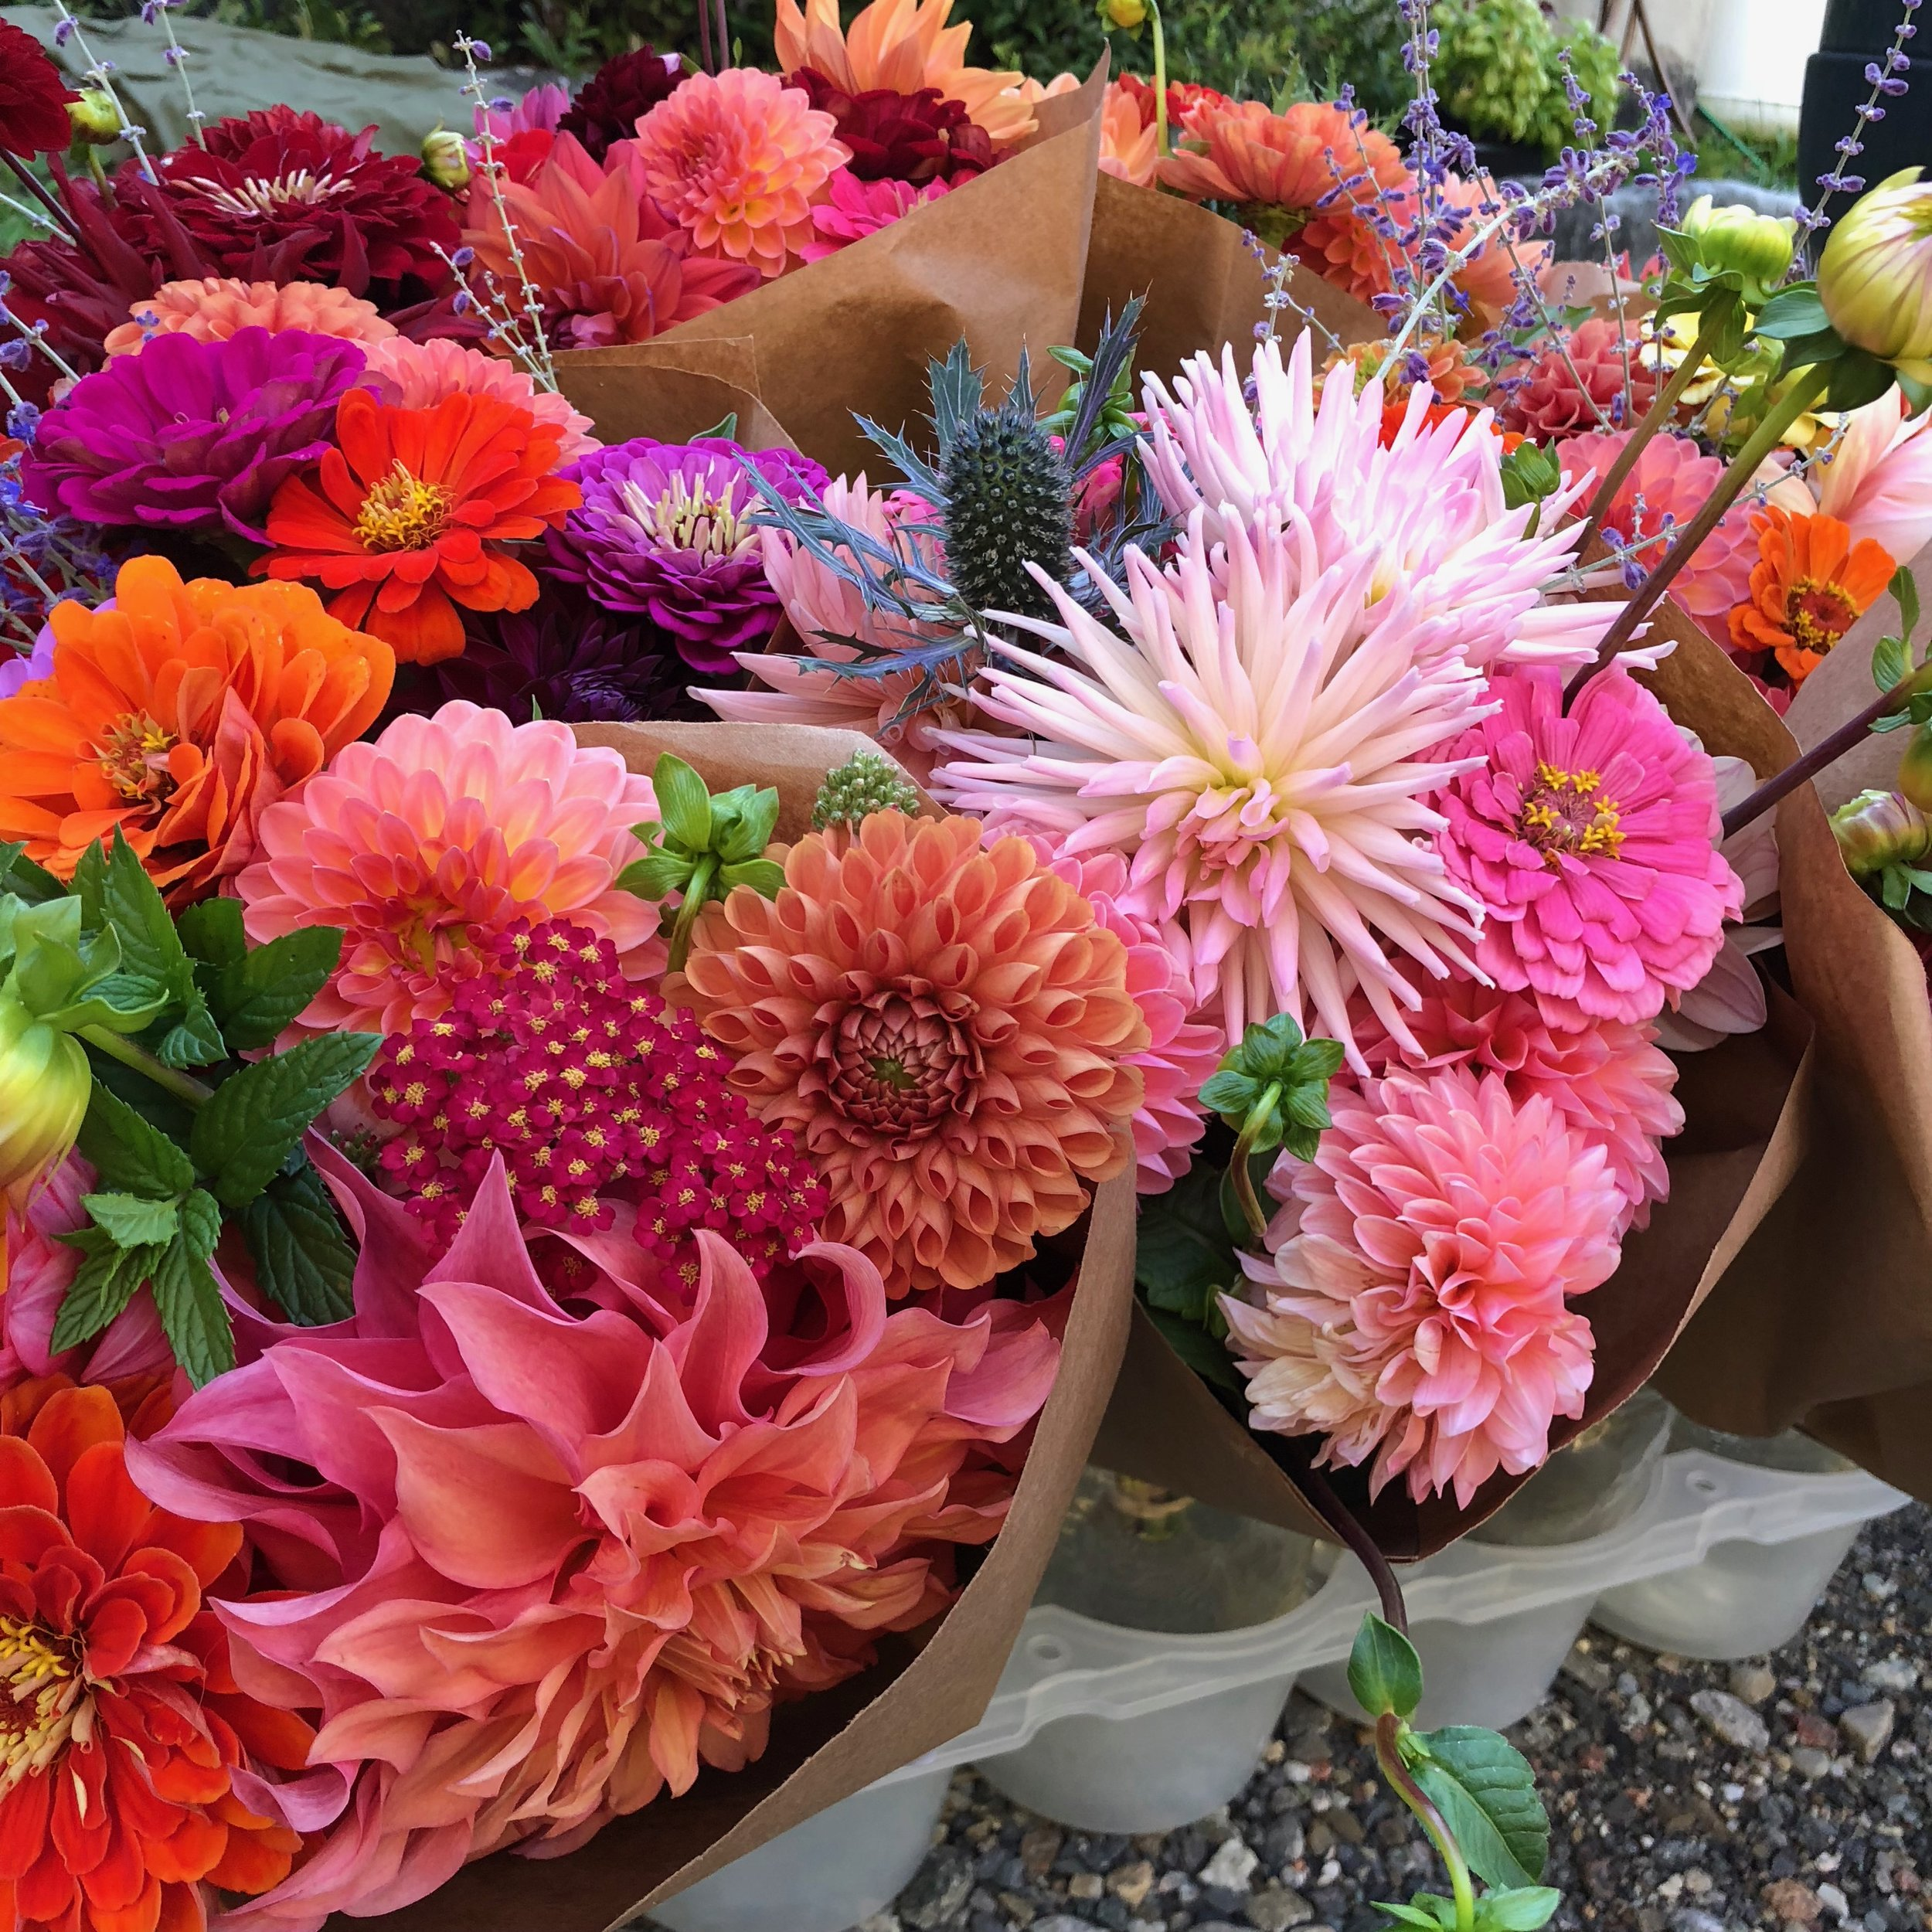 Samples of our Market Bouquets